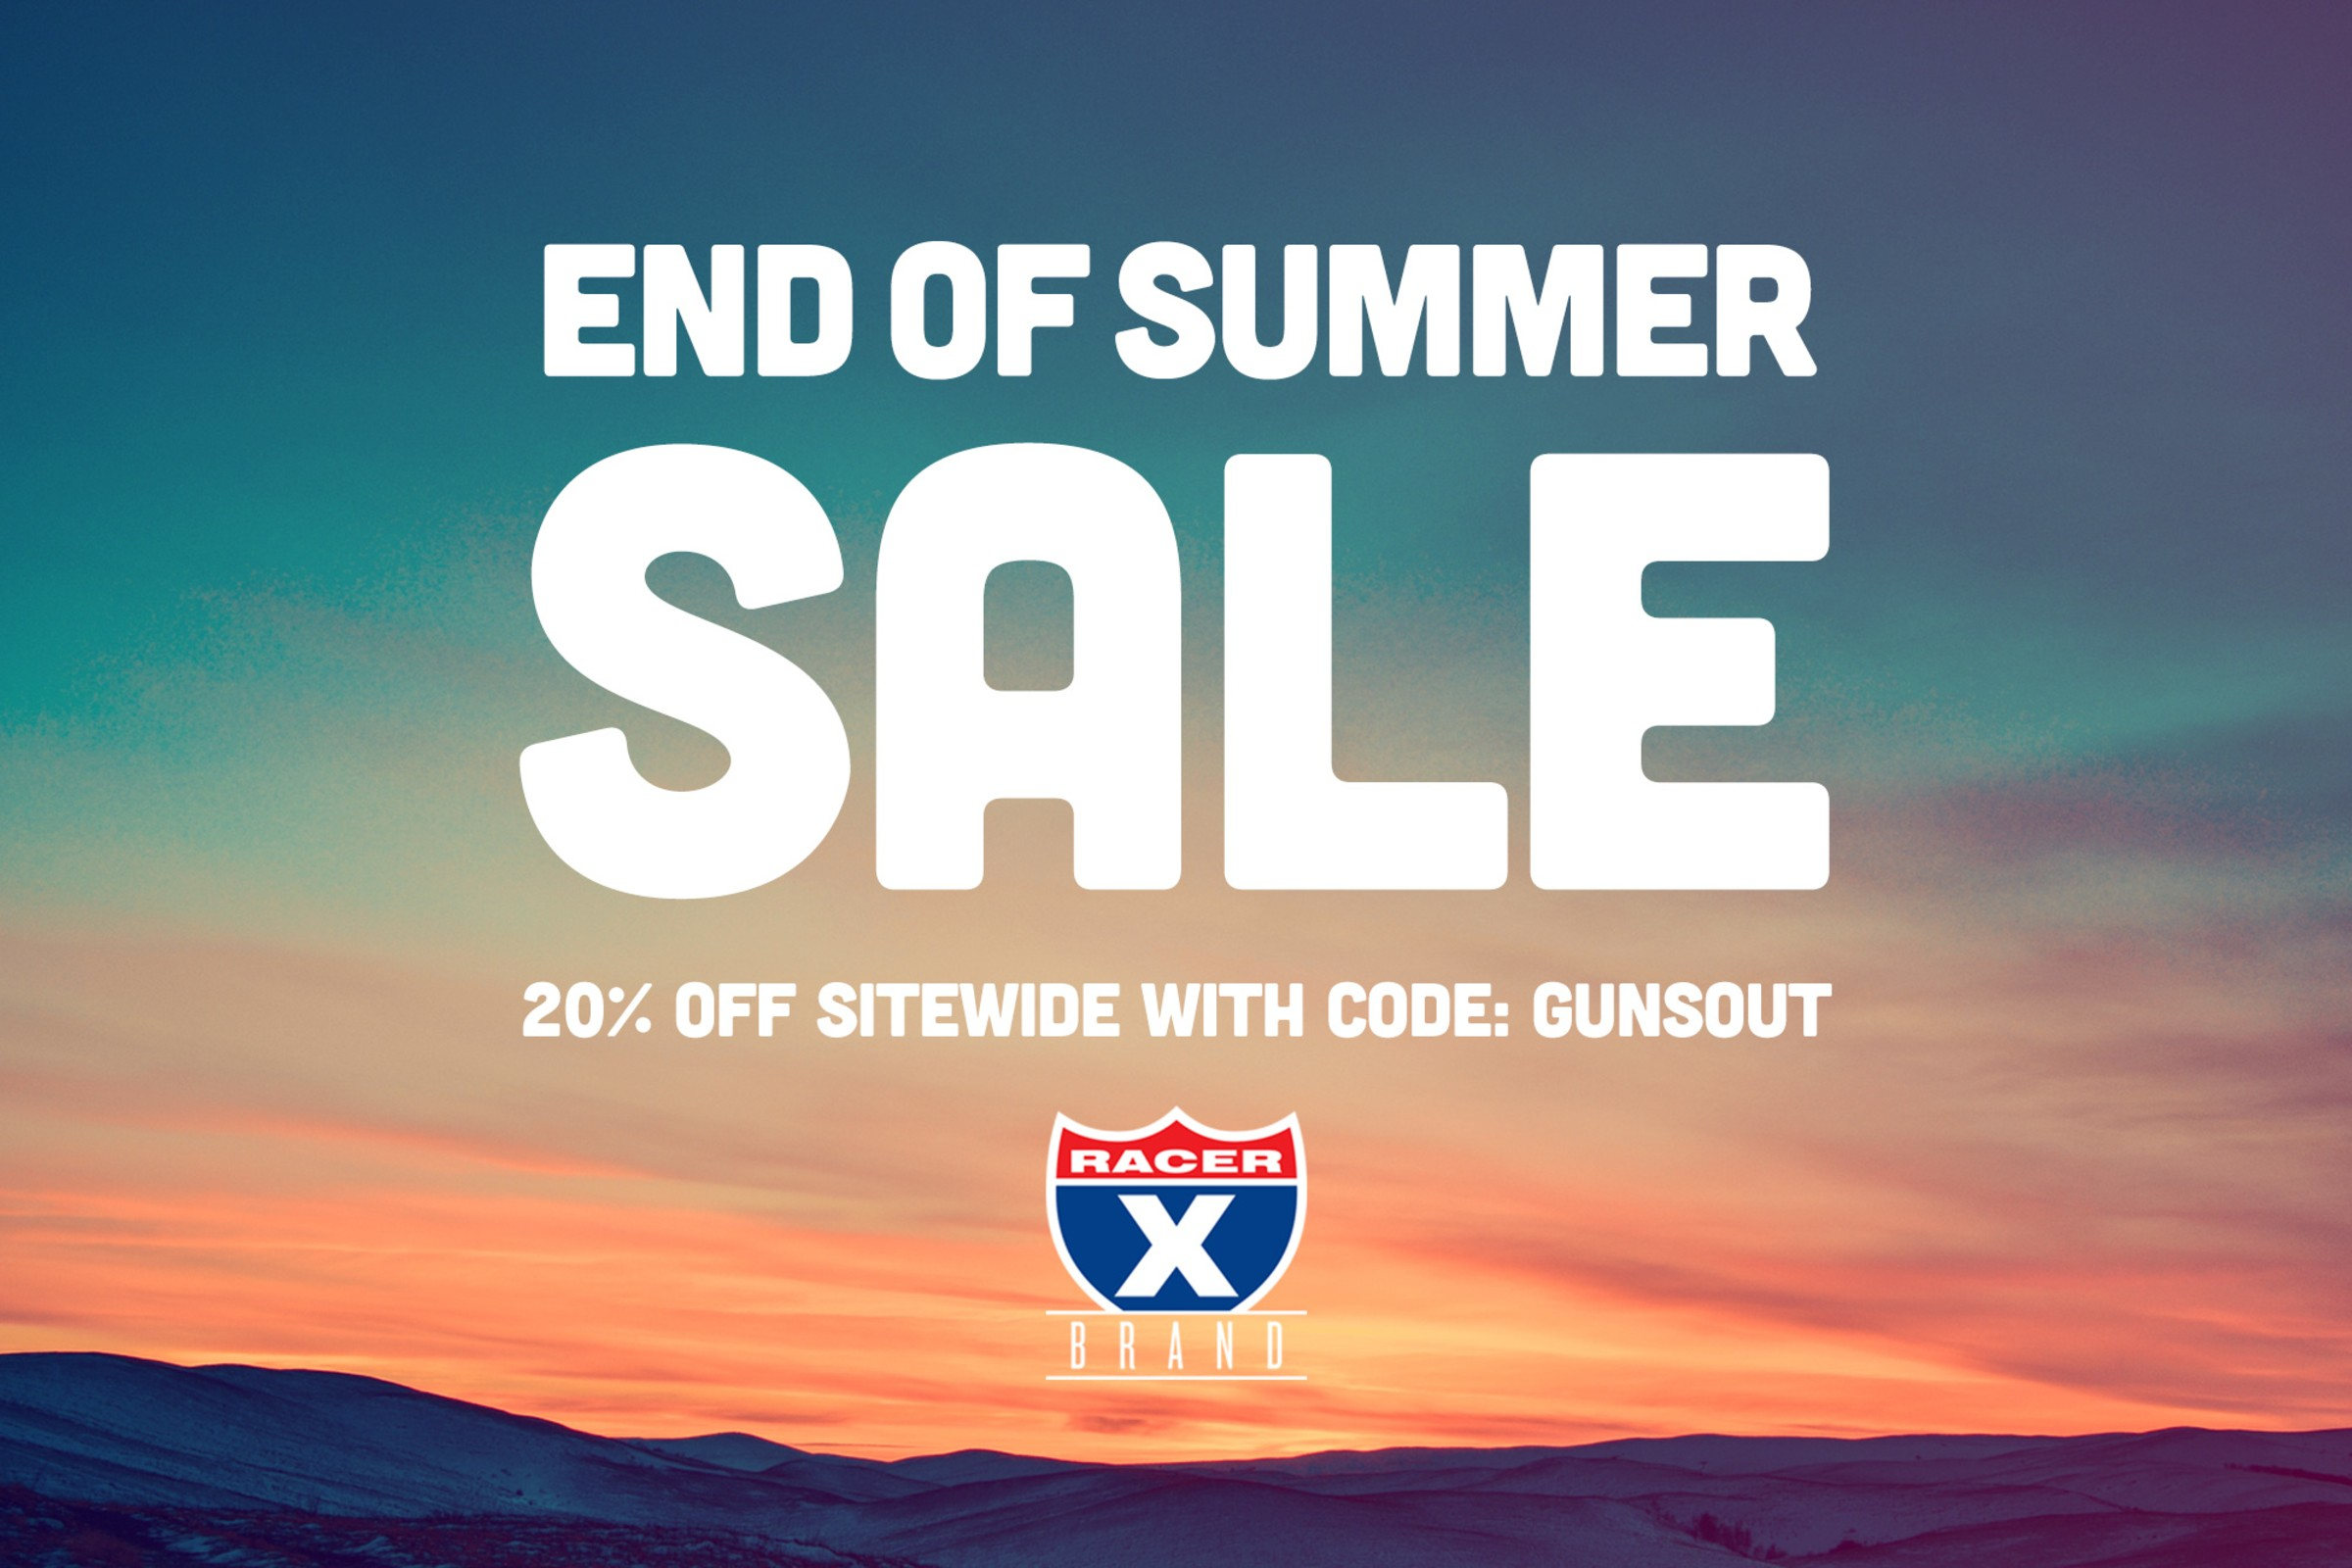 End of Summer Sale! Take 20% Off Sitewide